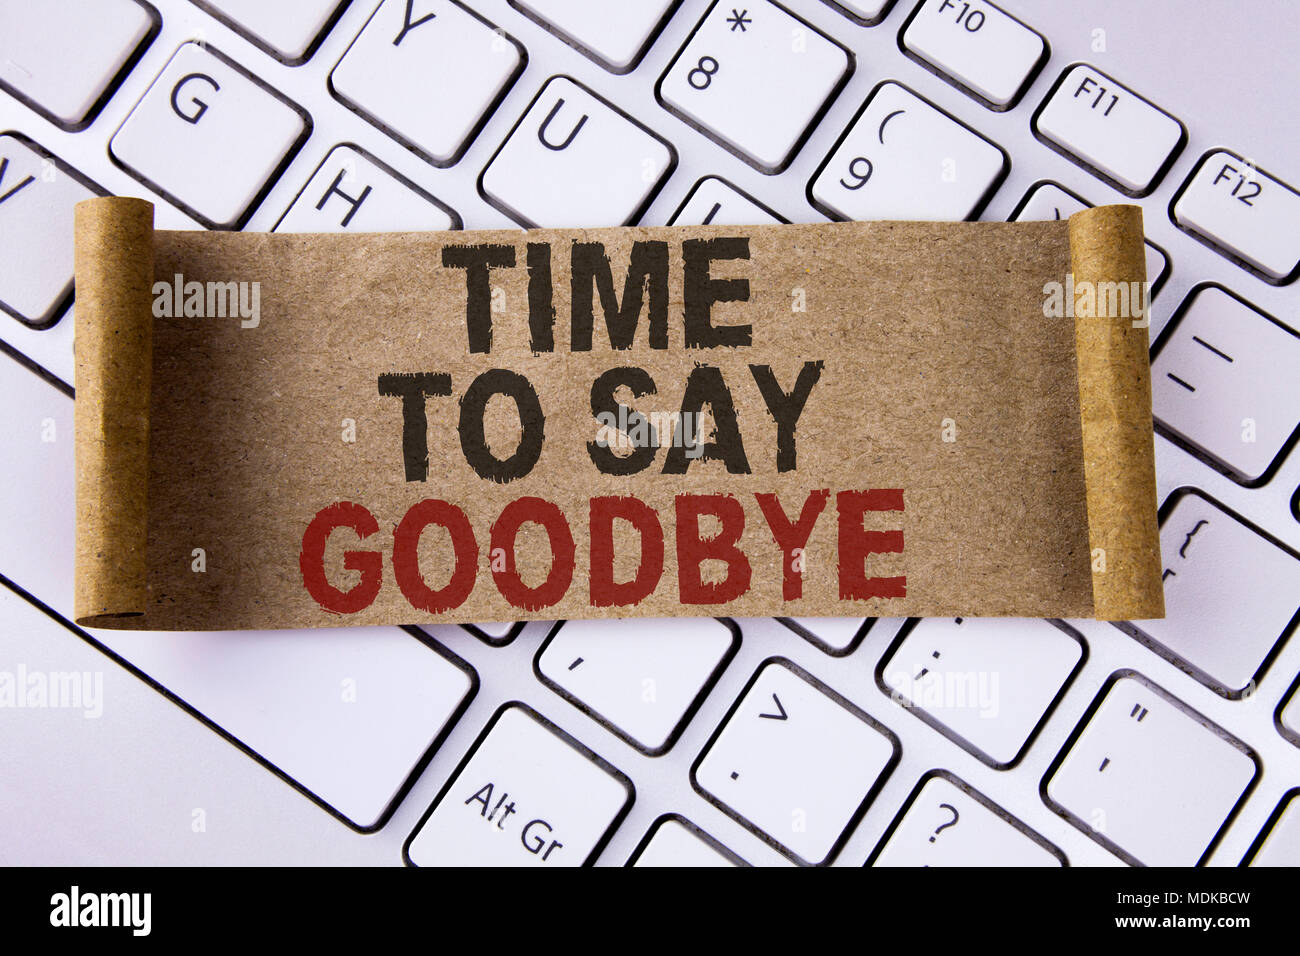 how to say goodbye in swahaili